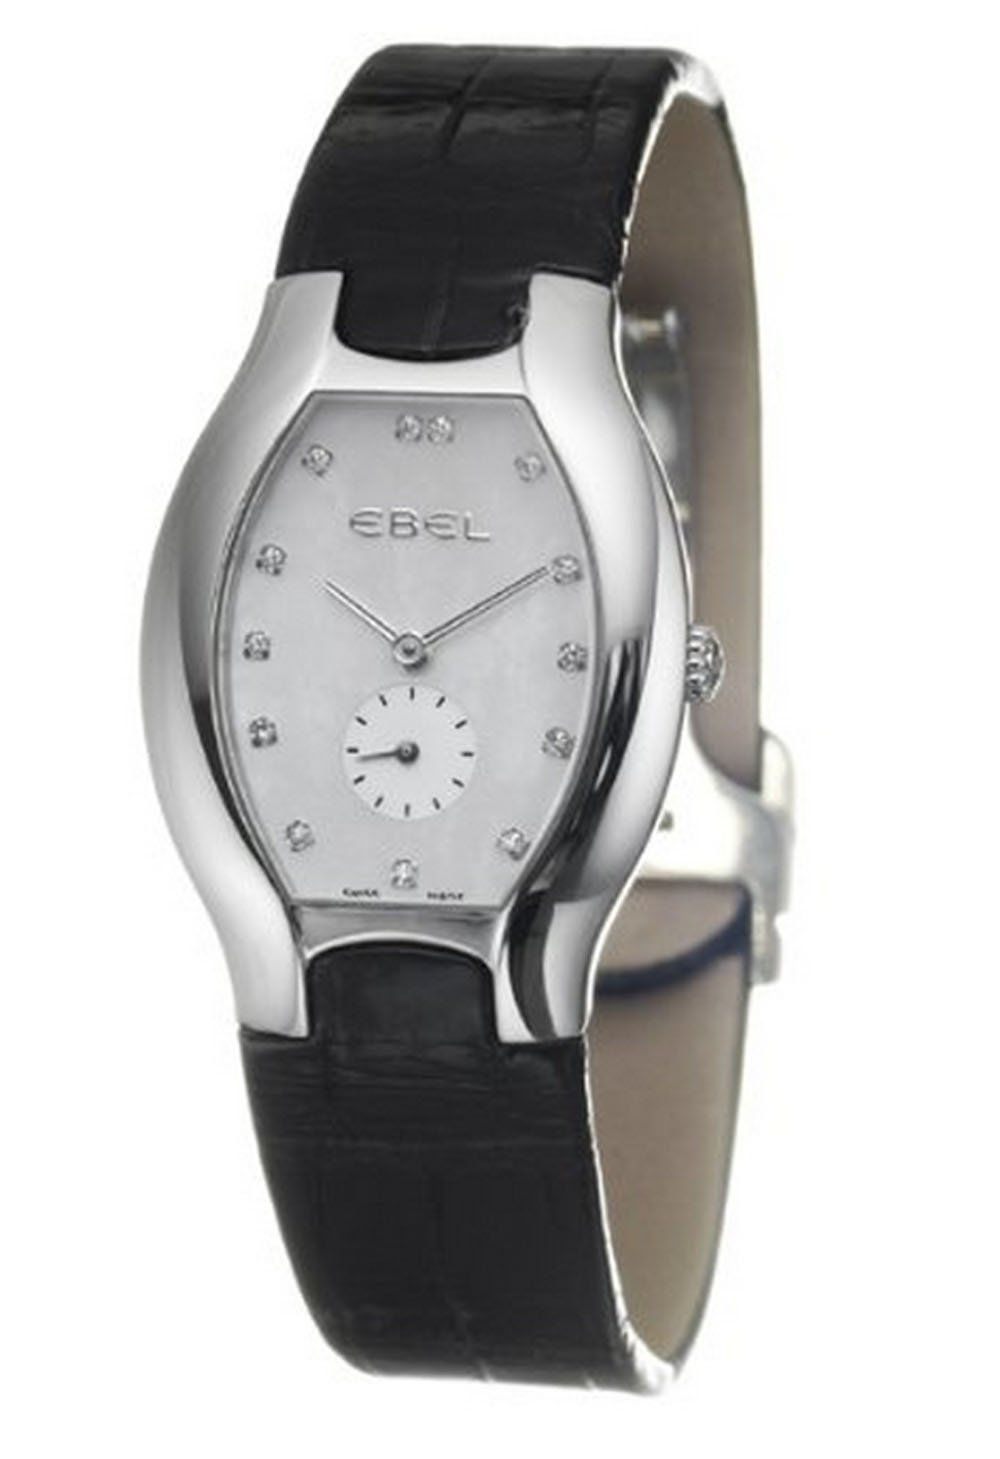 Ebel Beluga Tonneau Women's Quartz Watch 9014G31-9935206. Stainless Steel Case with 13 White Diamonds. CLASP: Fold-Over Clasp. Made in Switzerland. CROWN: Pull and Push Crown Recessed. CHRONOGRAPH: SECONDS REGISTER.